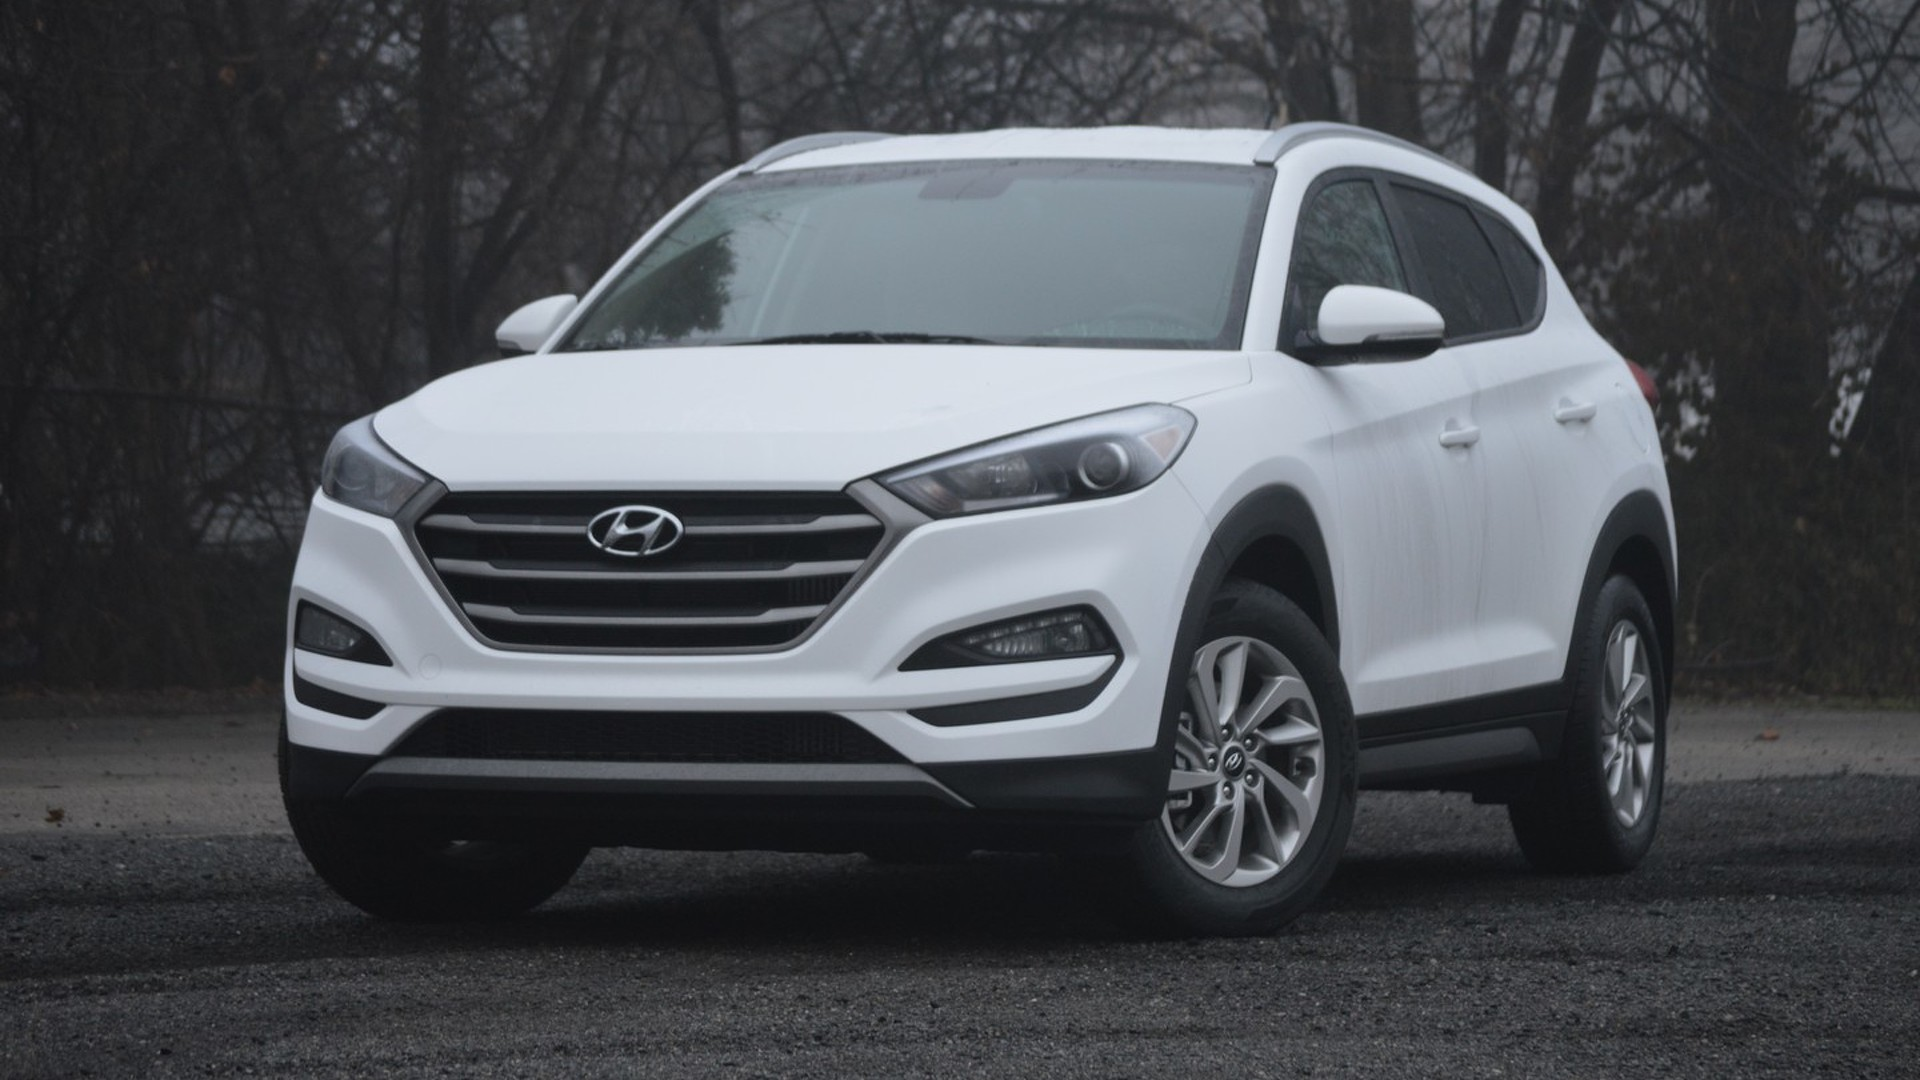 2018 Hyundai Tucson Sport Coming With Ger Engine More Kit